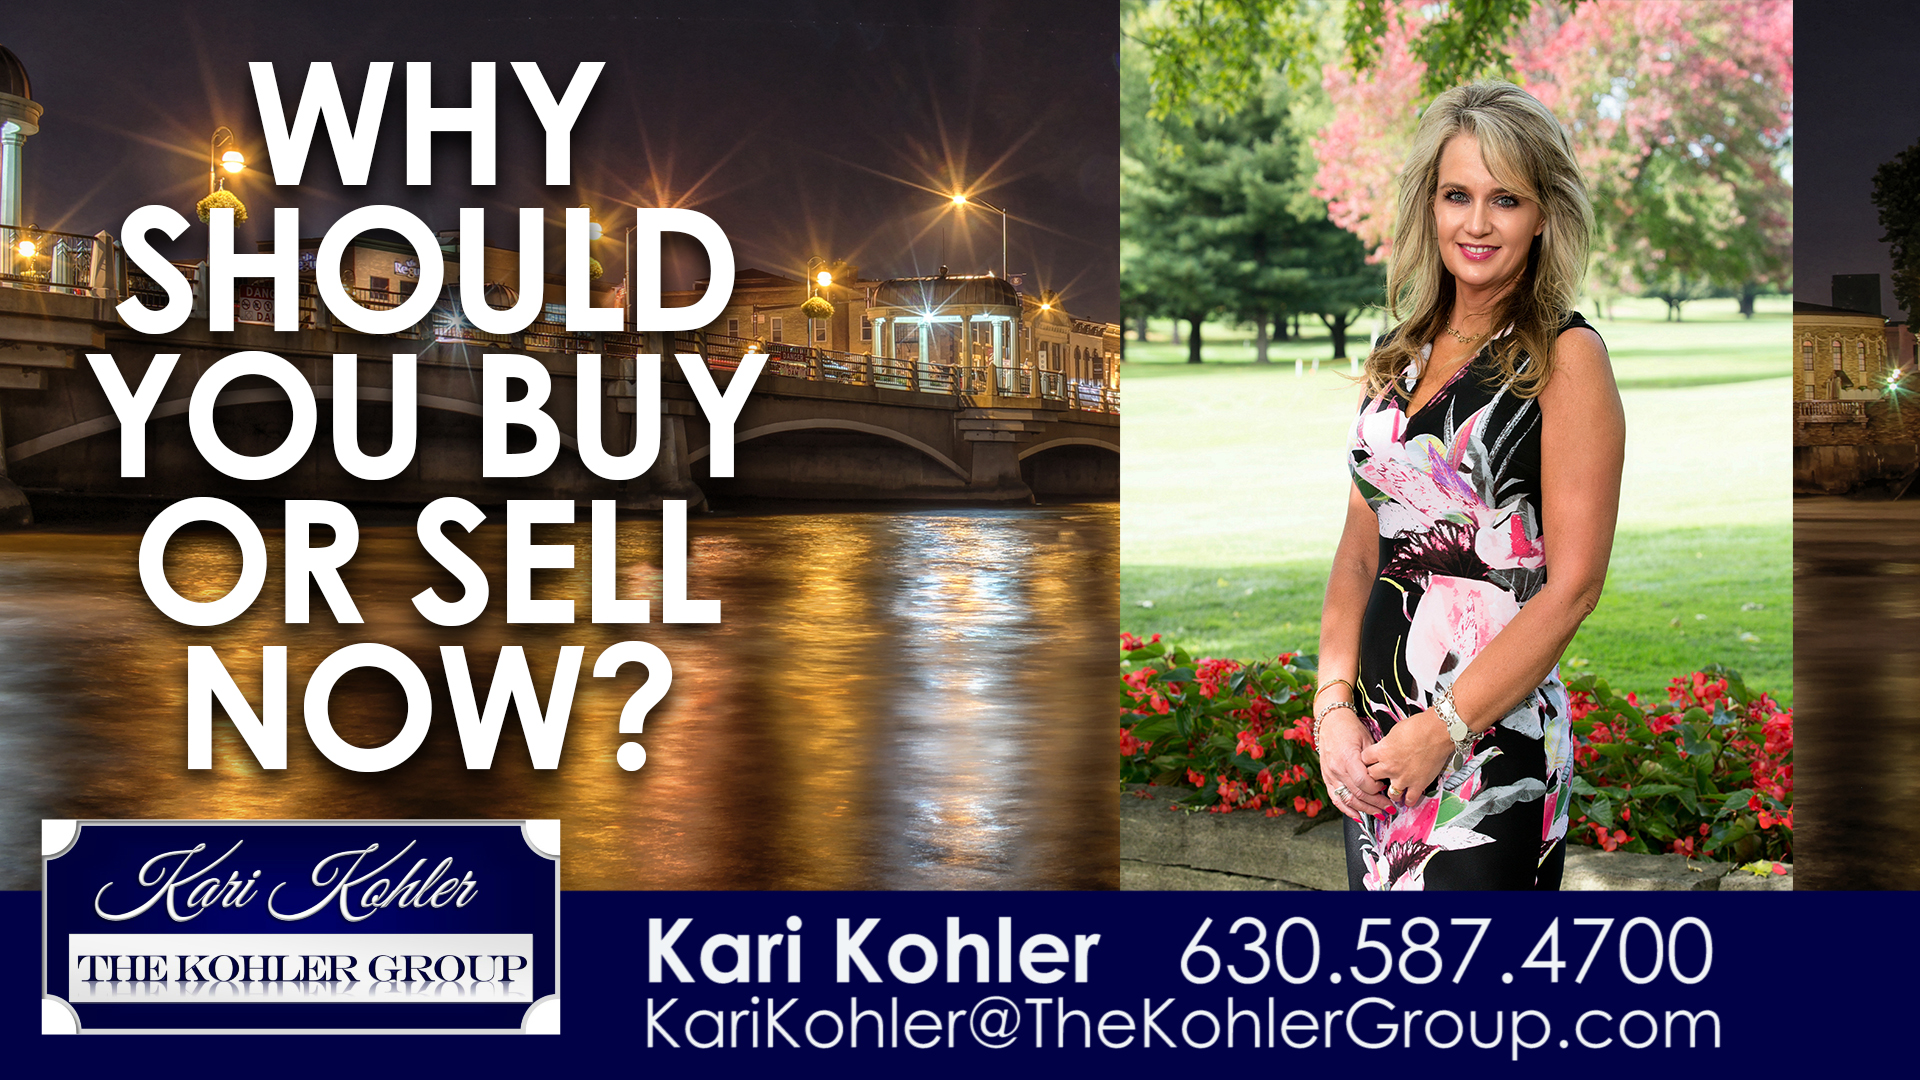 Why Should You Buy or Sell Now?